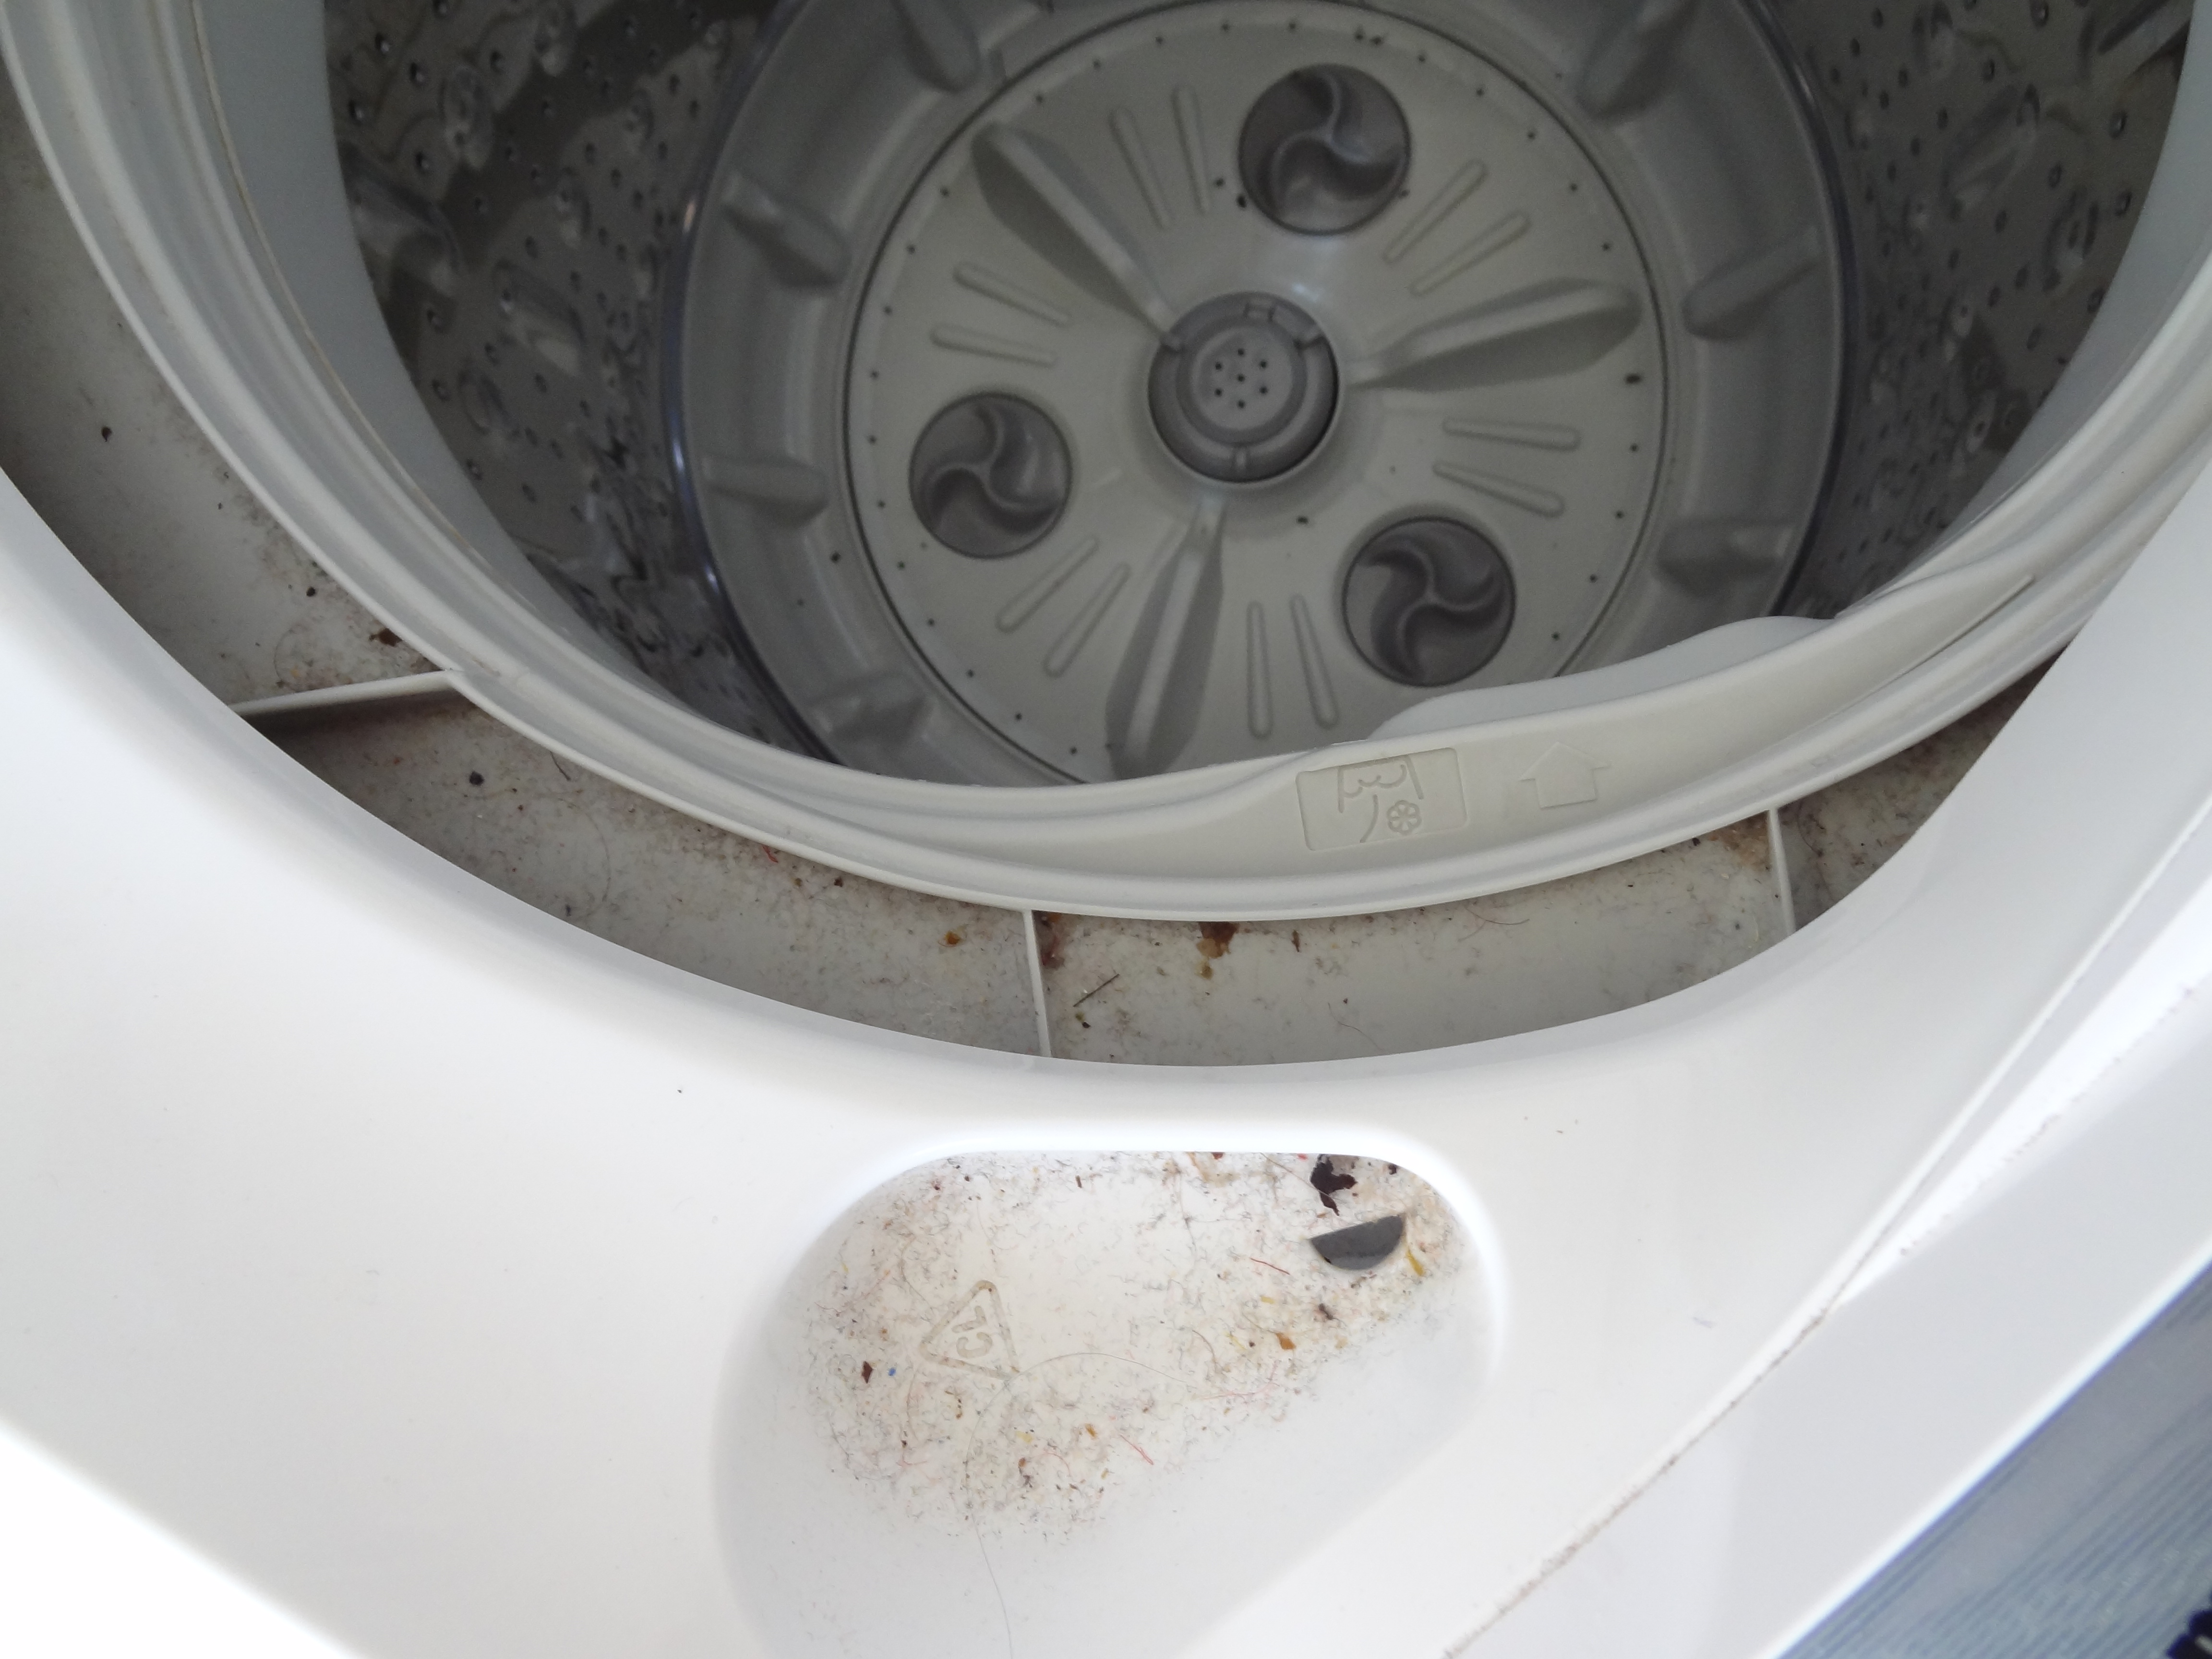 How to clean the washing machine properly